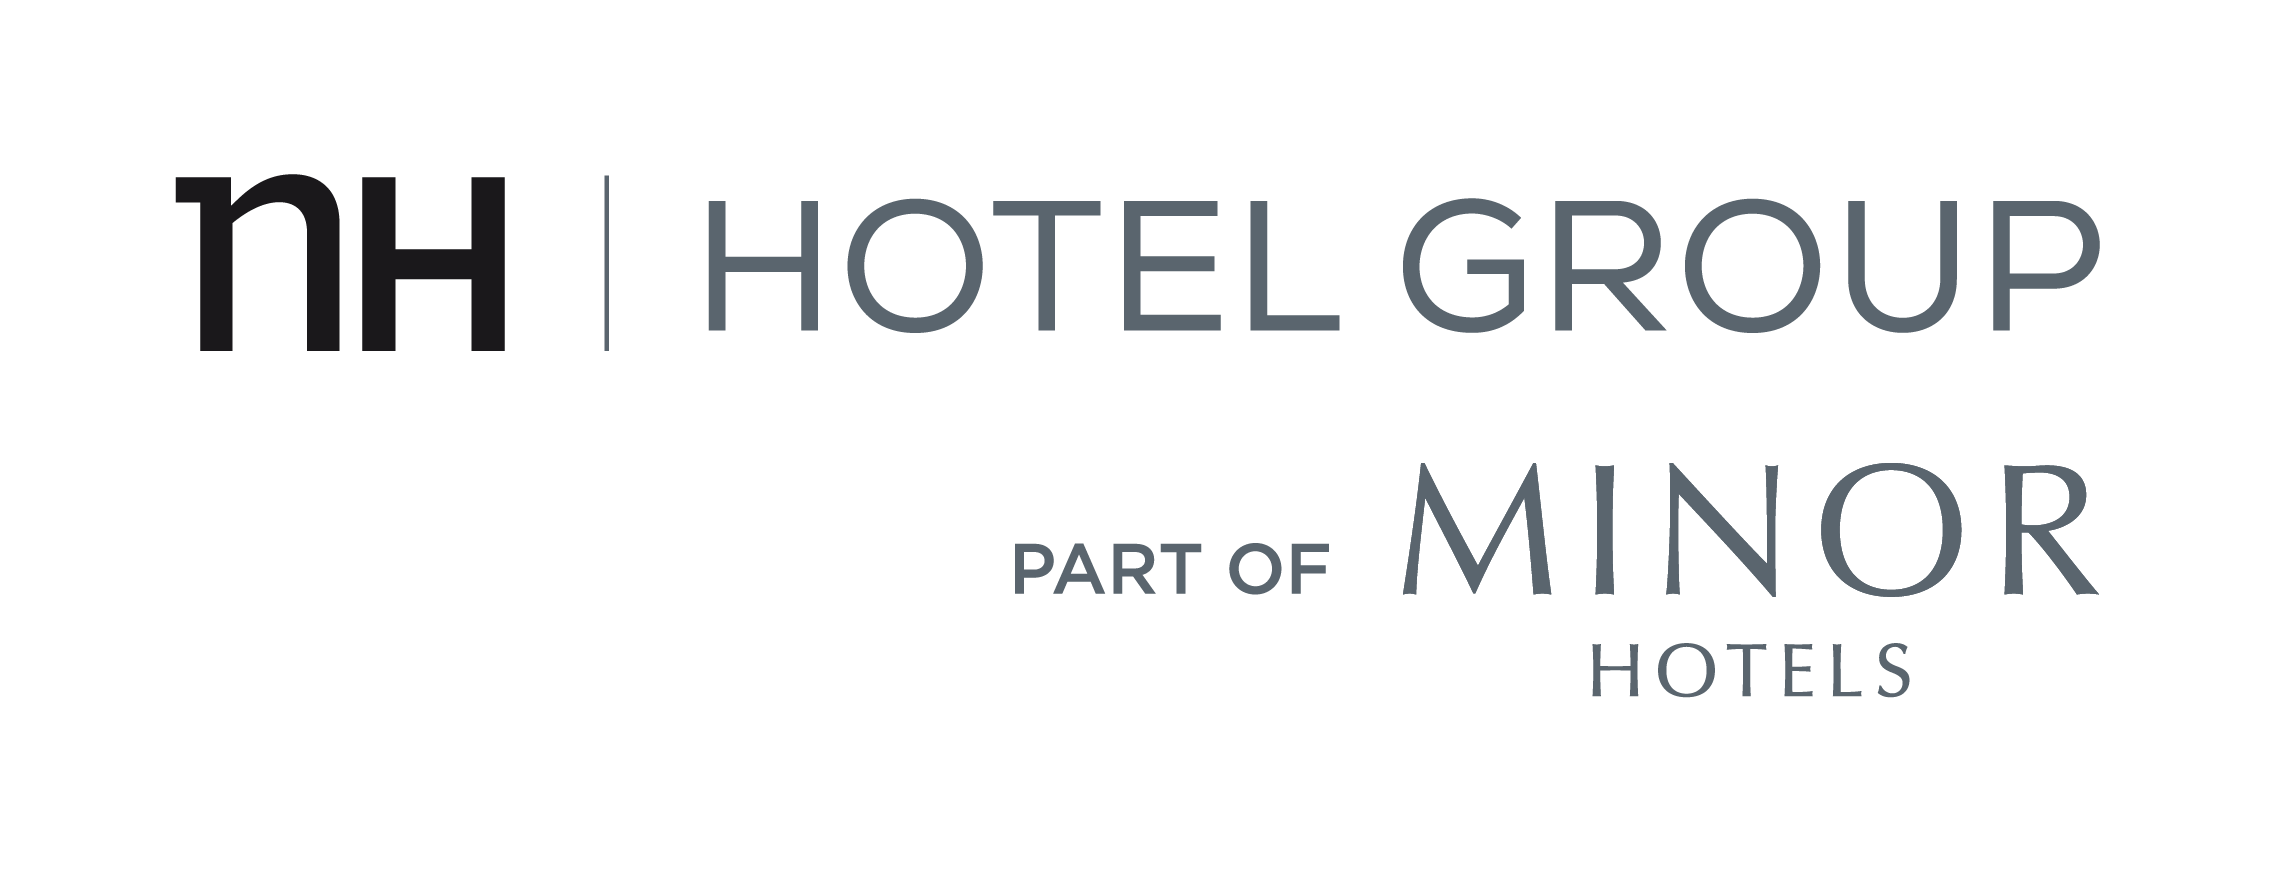 NH Hotel Group part of Minor Hotels